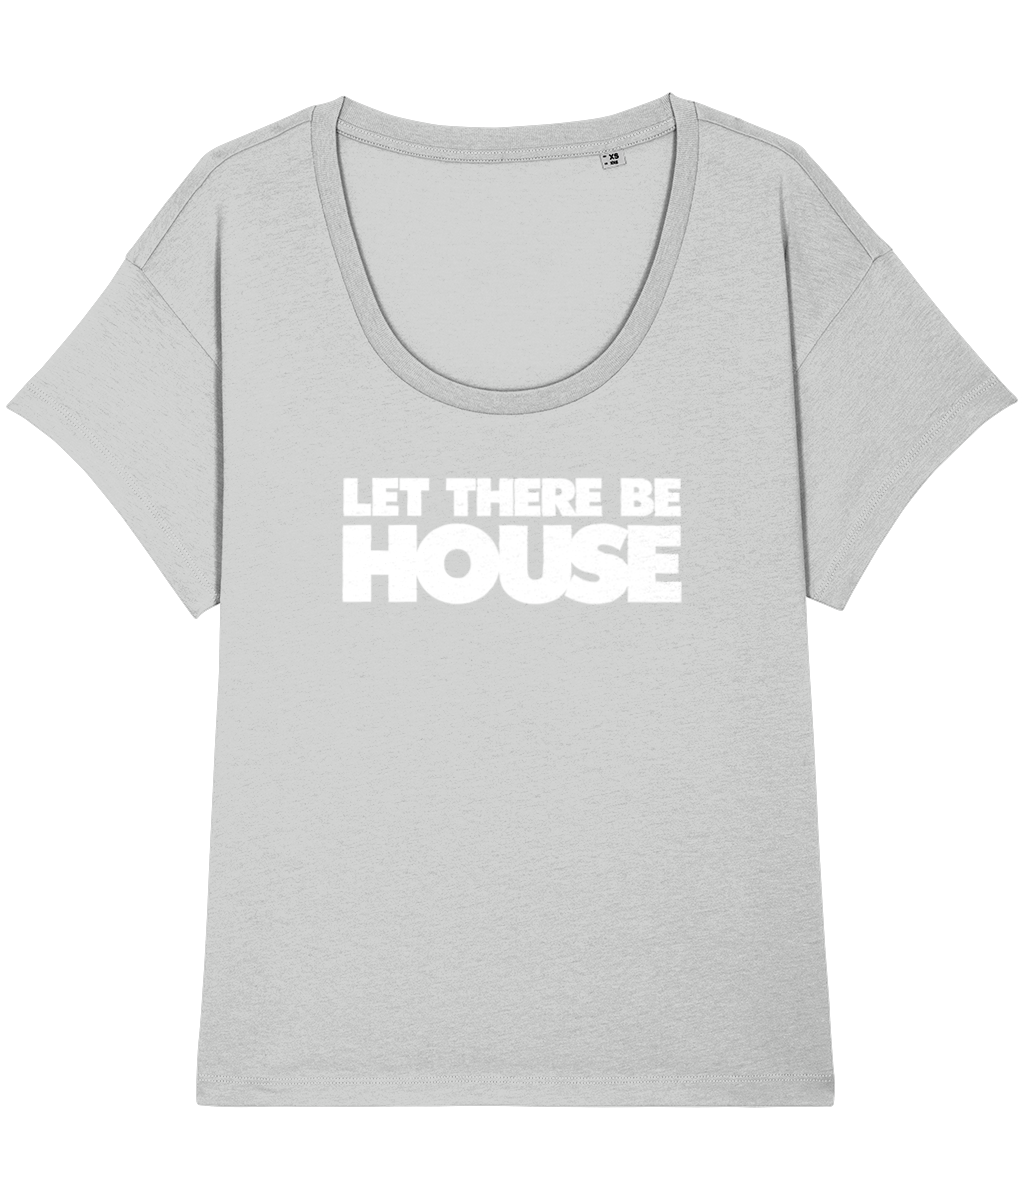 Women's Chiller T-shirt LTBH Words